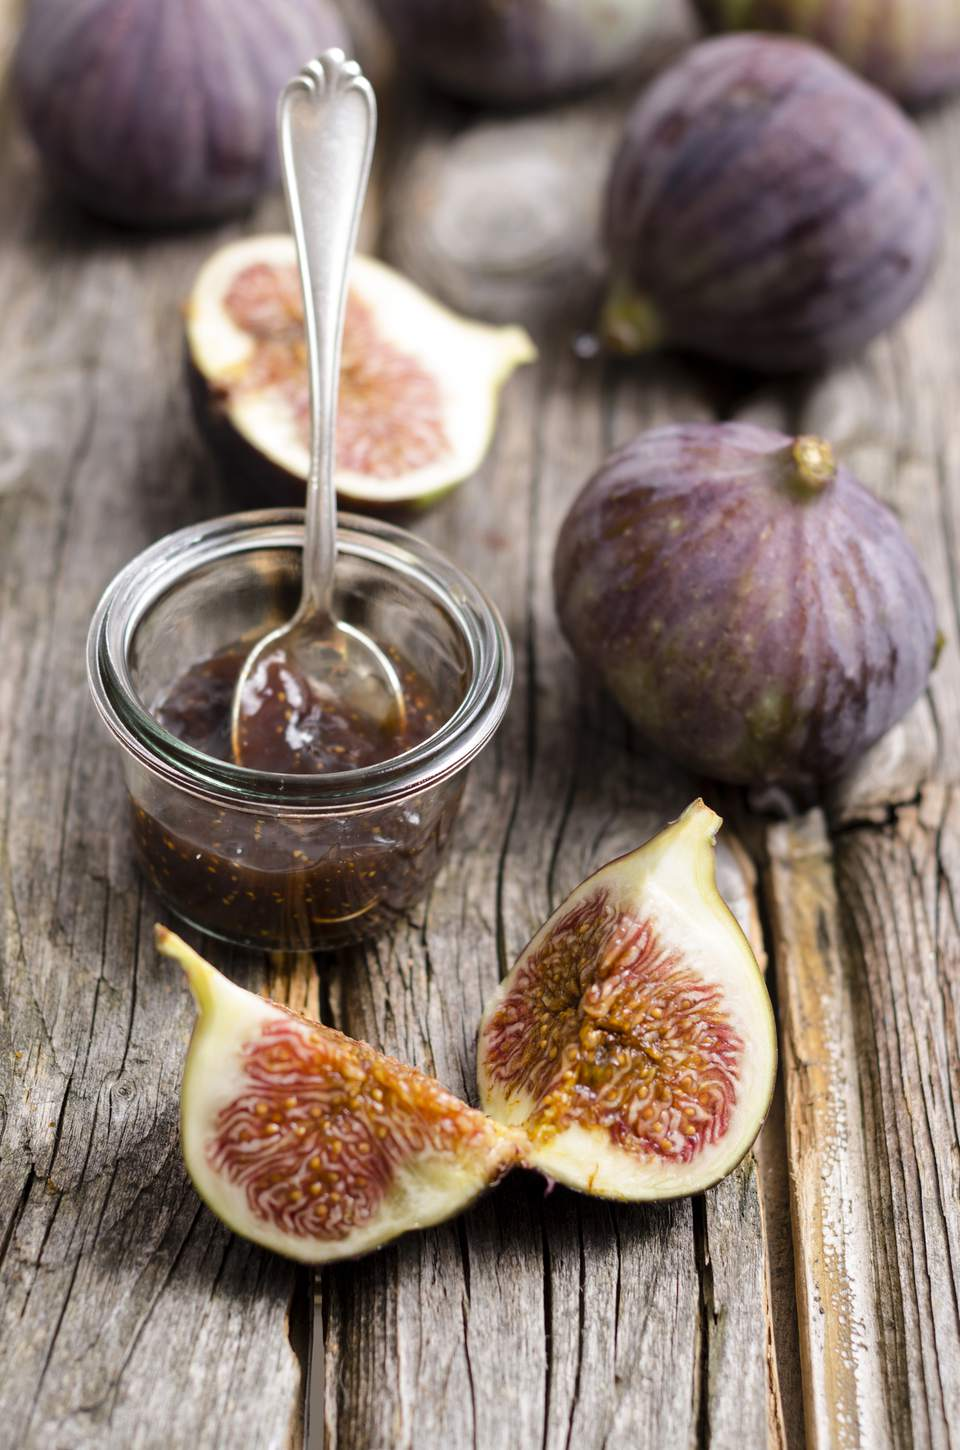 Figs and a glass of fig jam on a wooden table